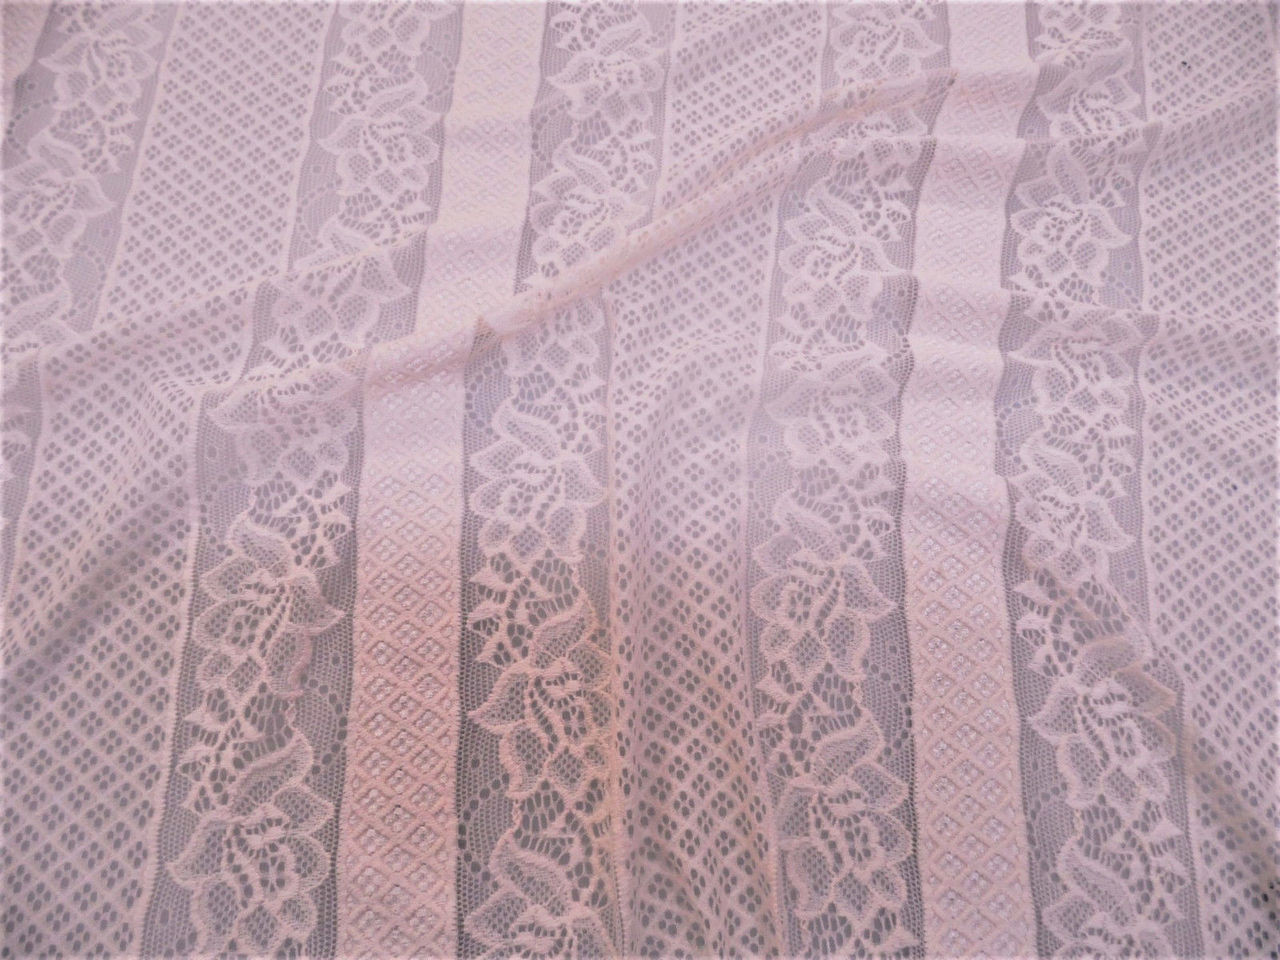 Discount Fabric Stretch Mesh Lace White Embroidered Floral Stripe Sheer D204